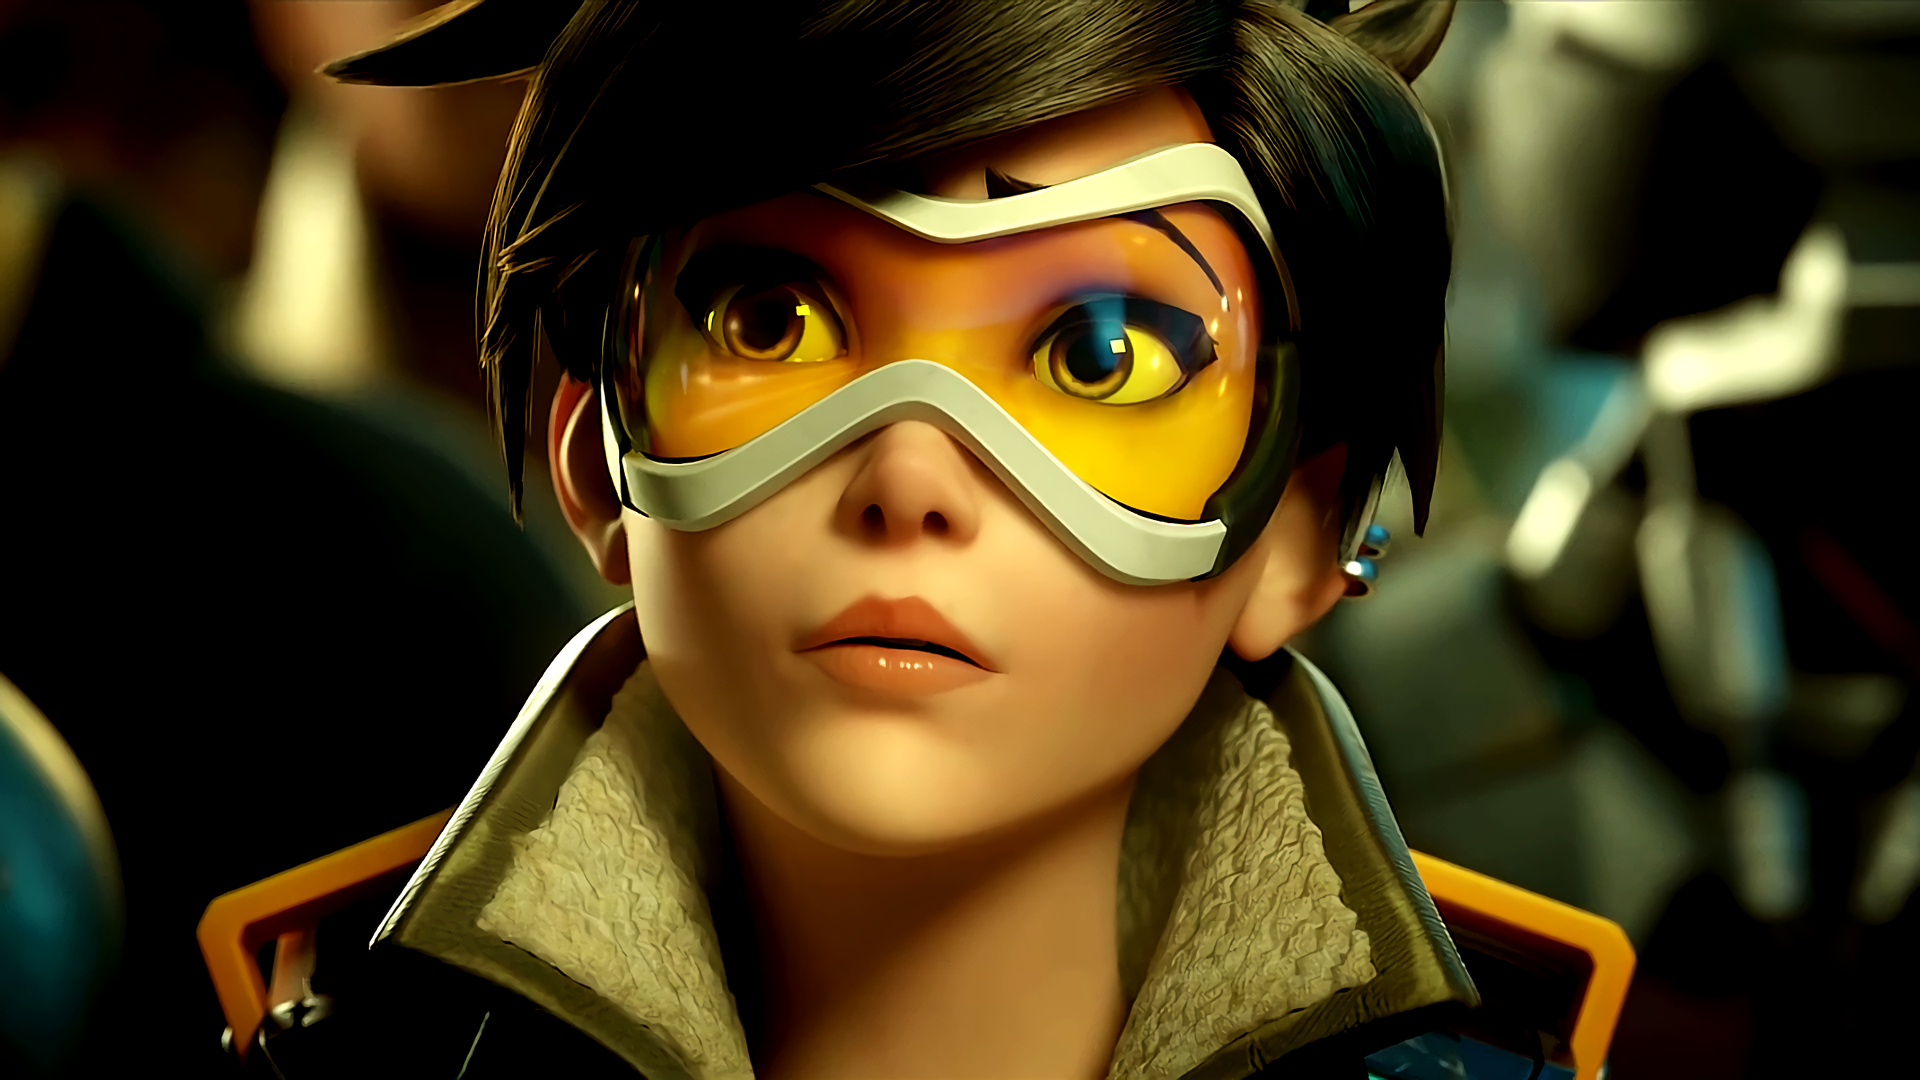 Blizzard tease a potential new Overwatch hero